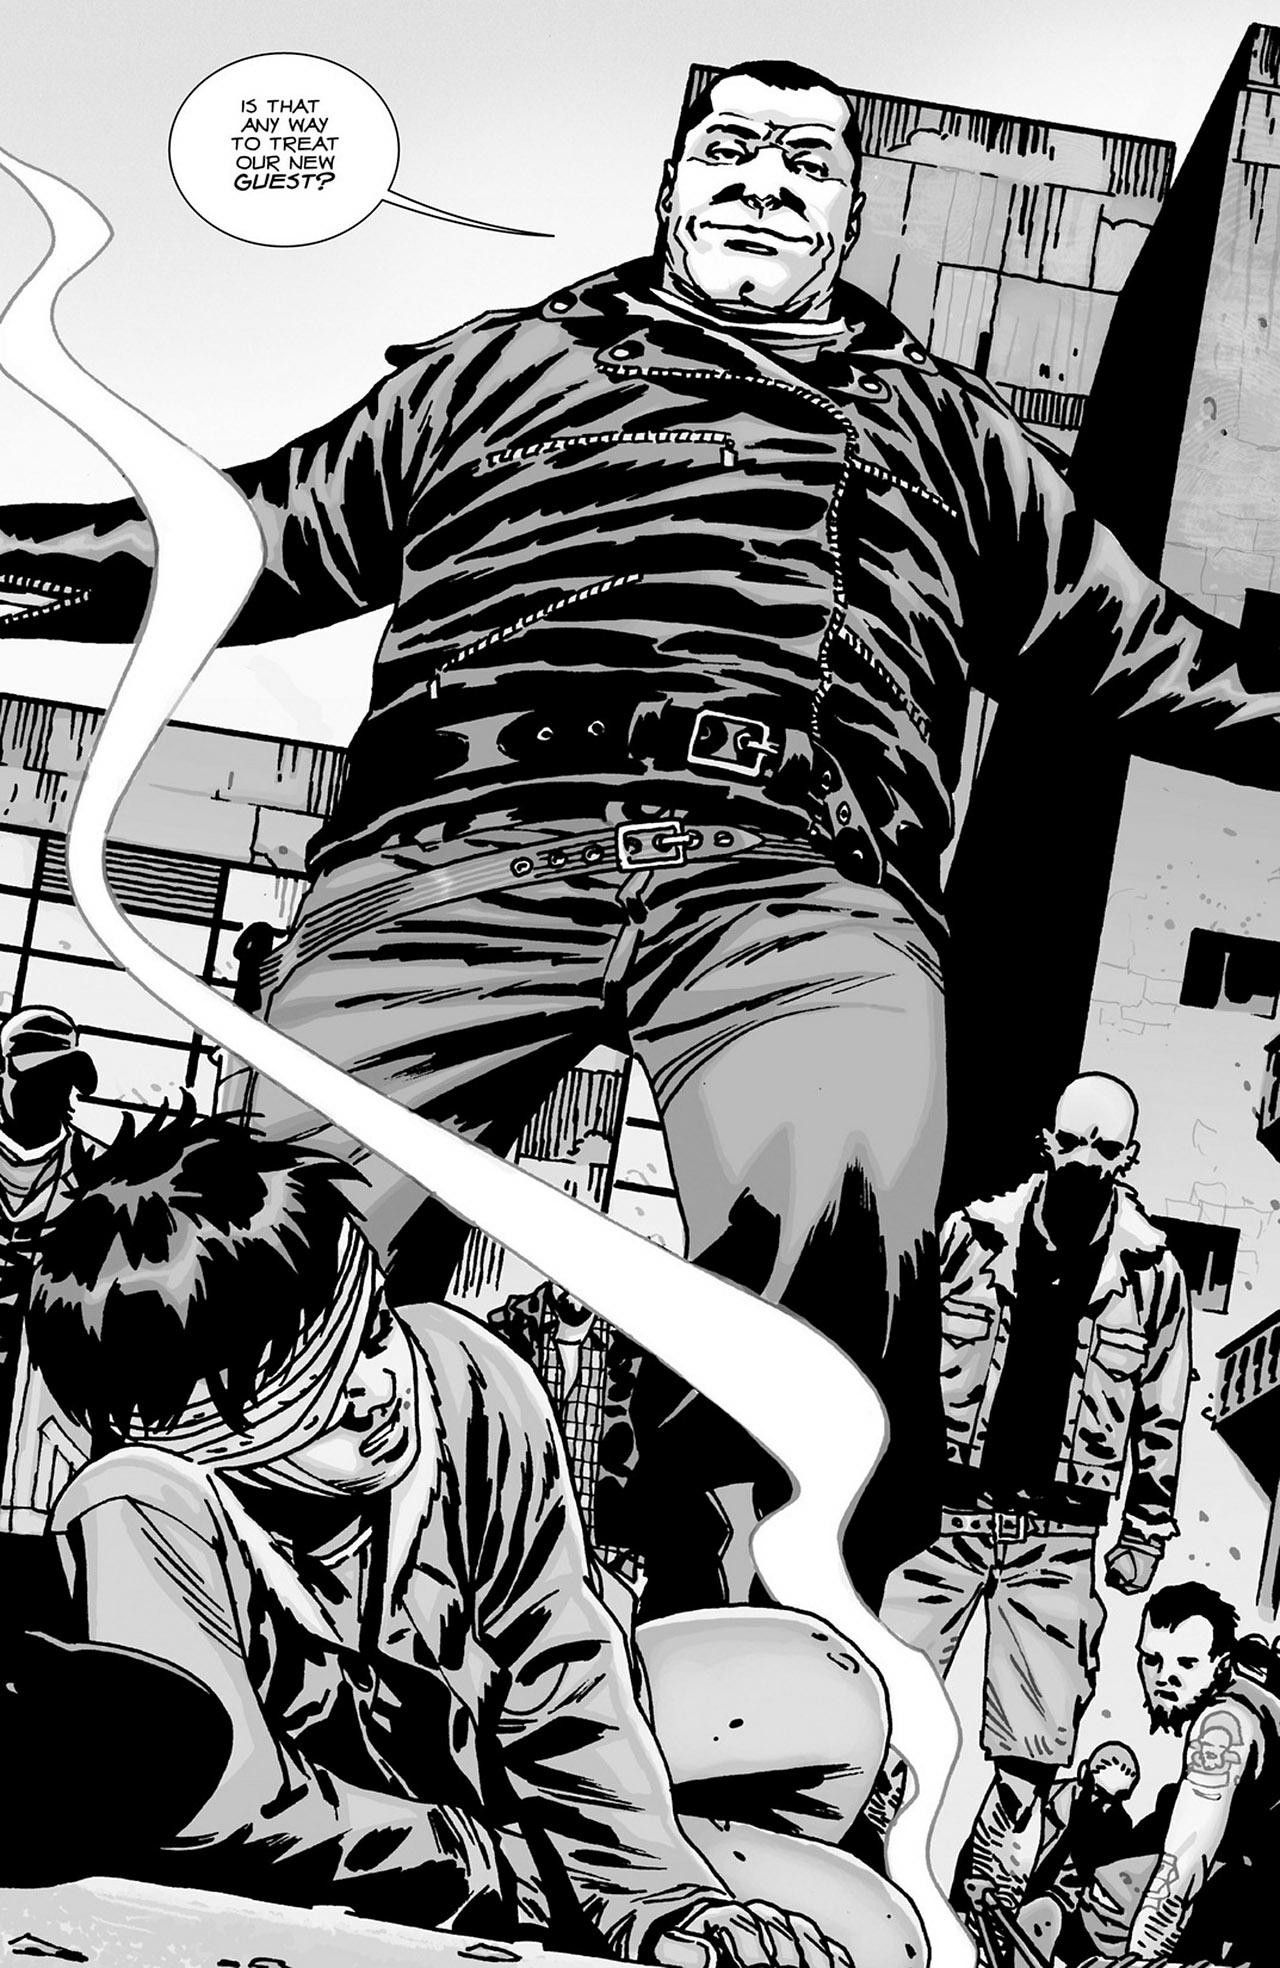 Negan. Possibly Carl on the ground? Maybe his eye really will get shot?